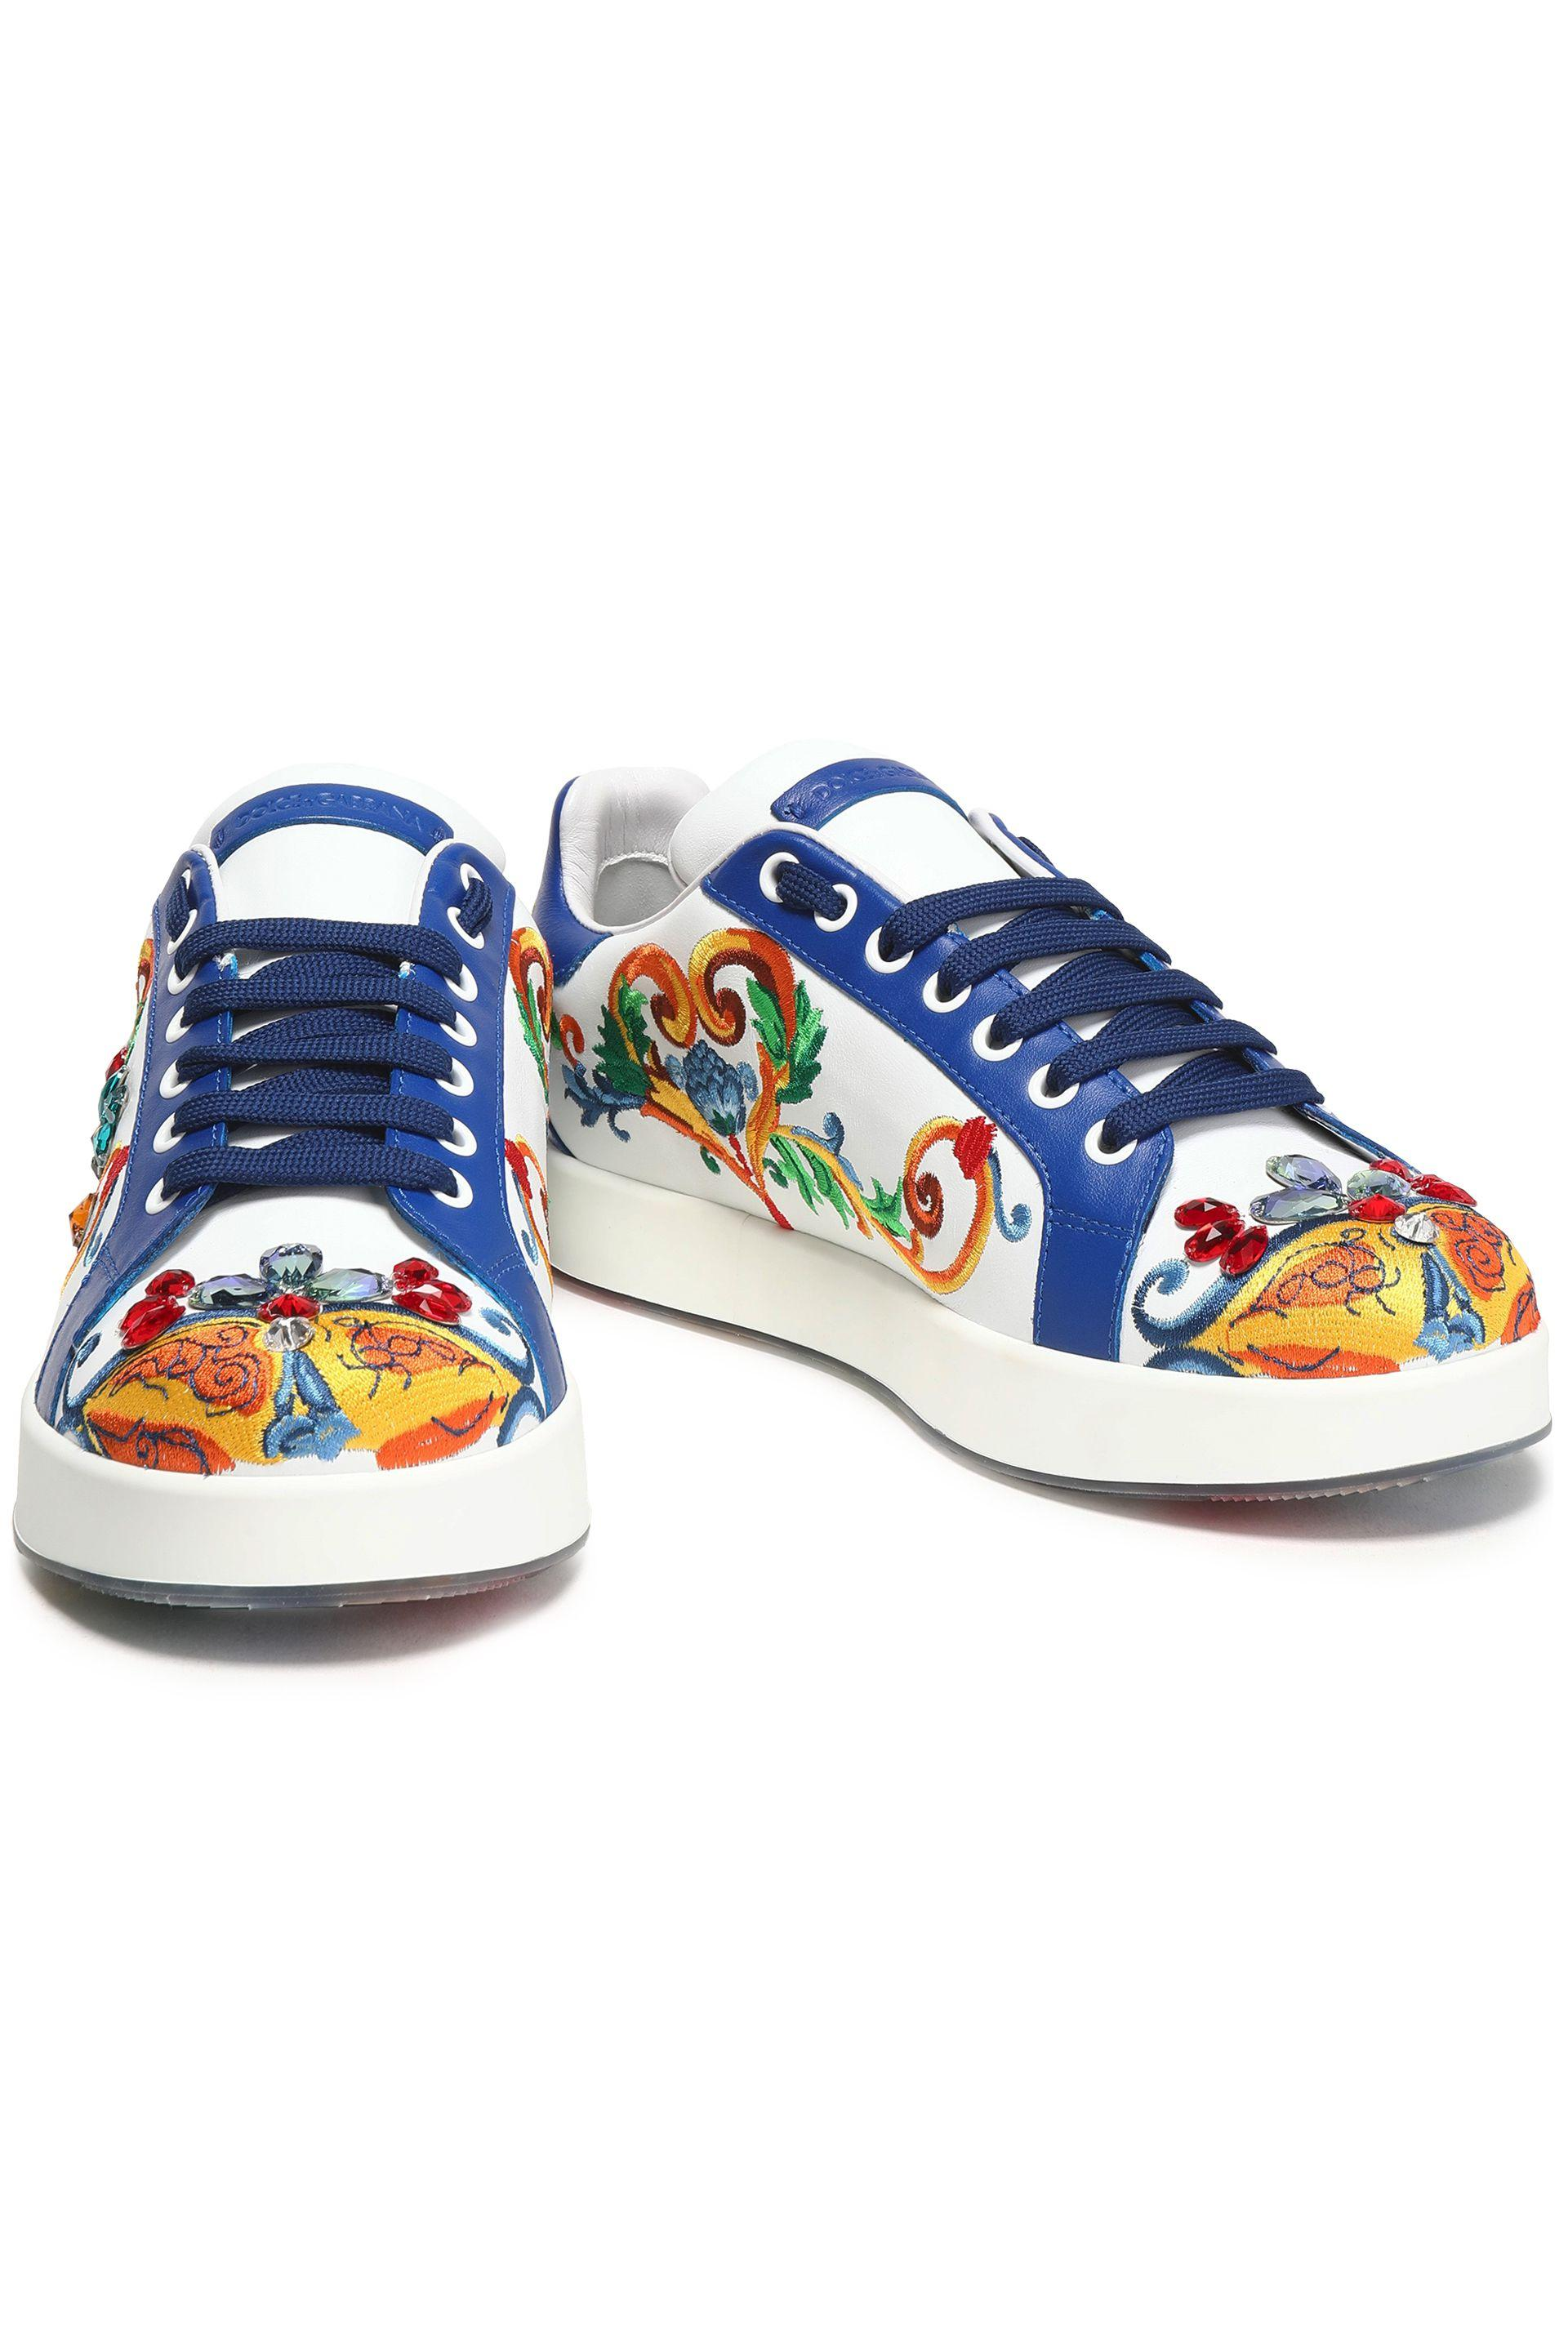 968f15c836 Dolce & Gabbana - White Woman Portofino Crystal-embellished Embroidered Leather  Sneakers Blue - Lyst. View fullscreen